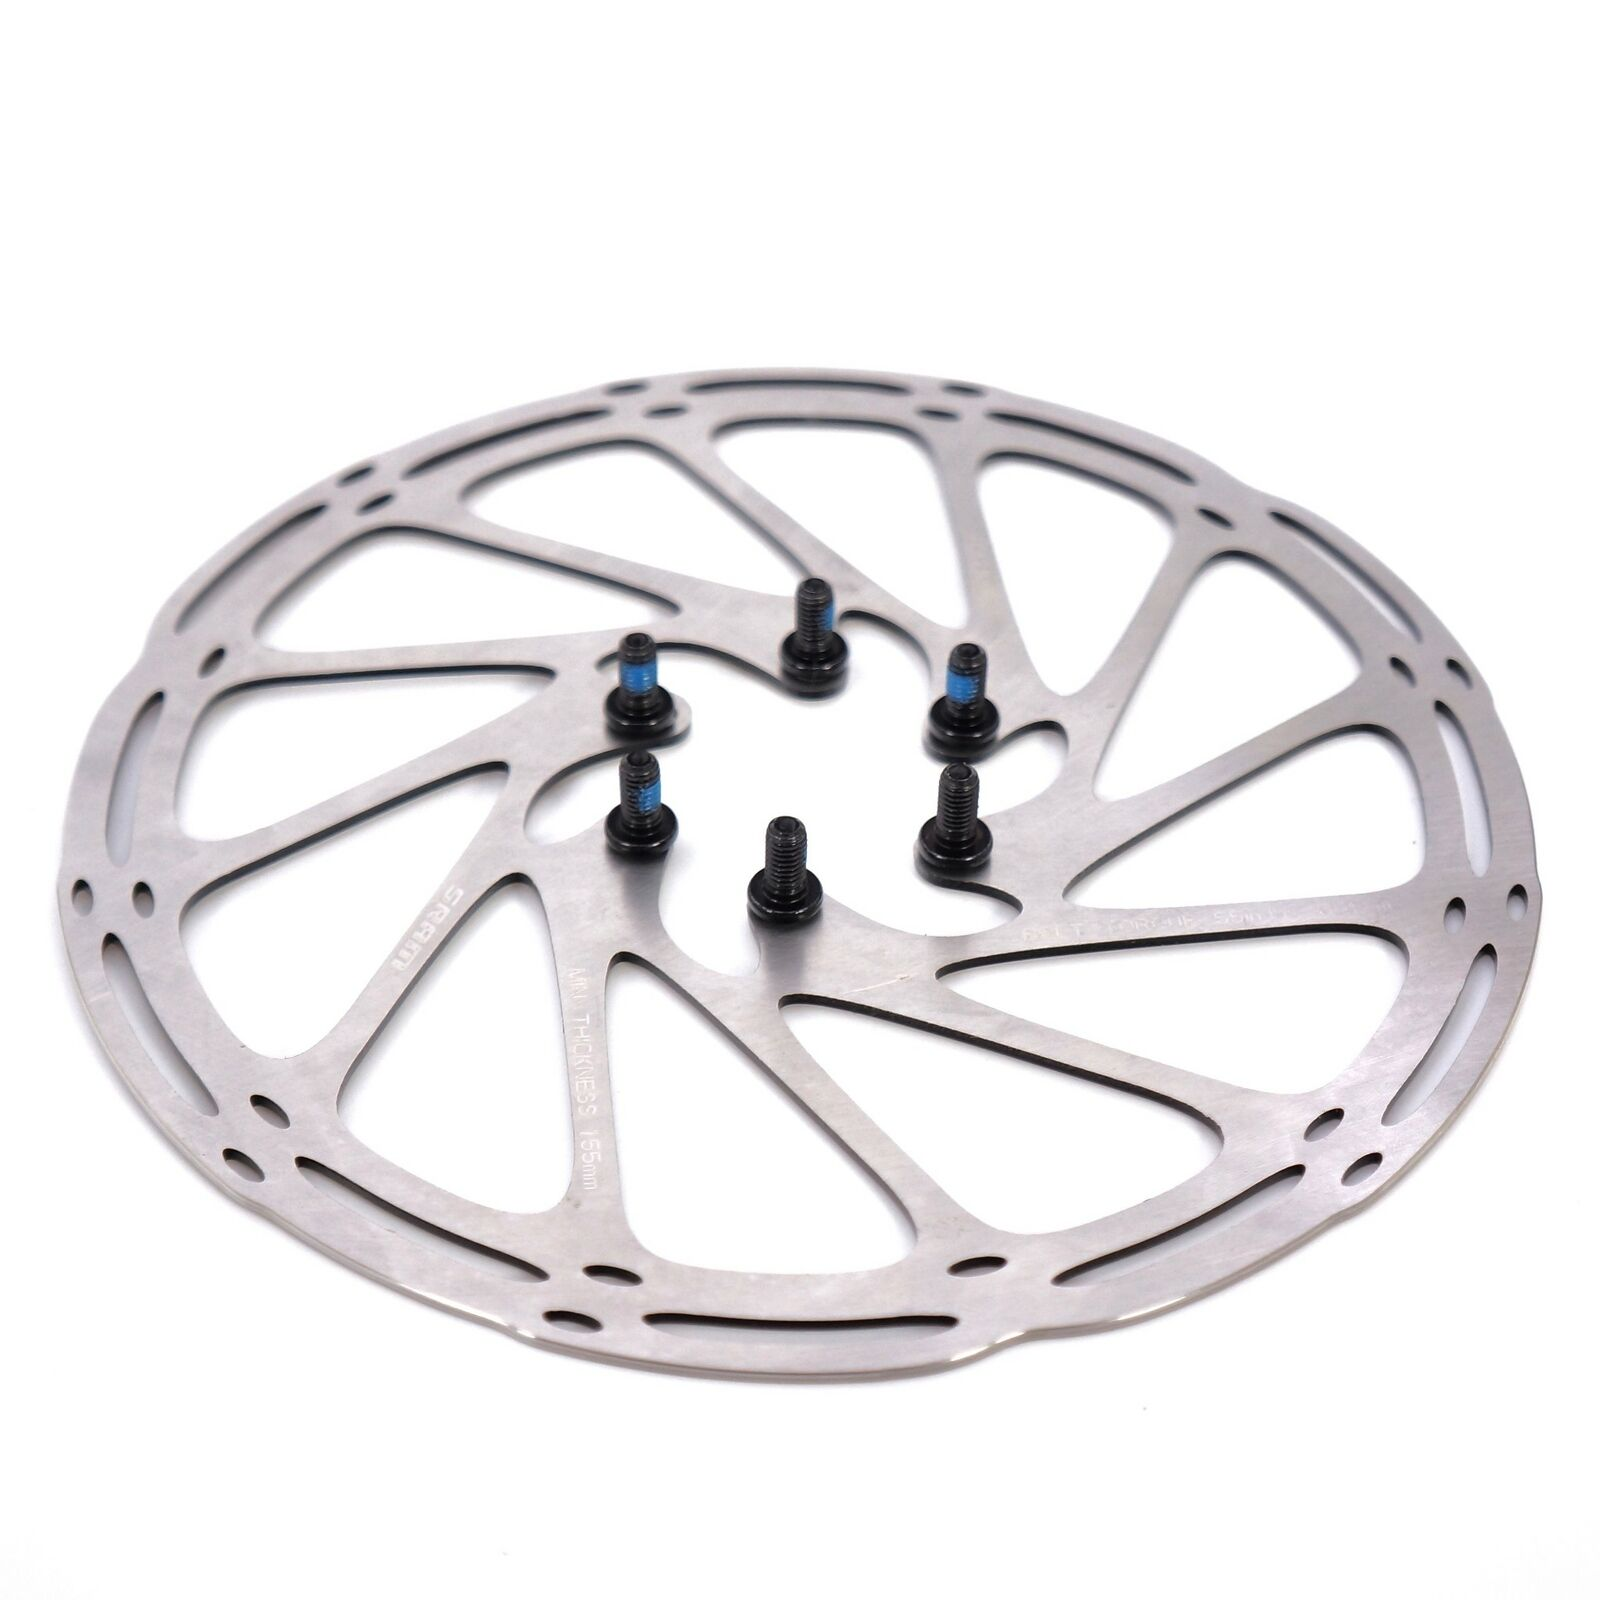 SRAM Centerline Disc Brake Rotor 140 160 180 200mm 6 Bolt MTB Mountain Road Bike